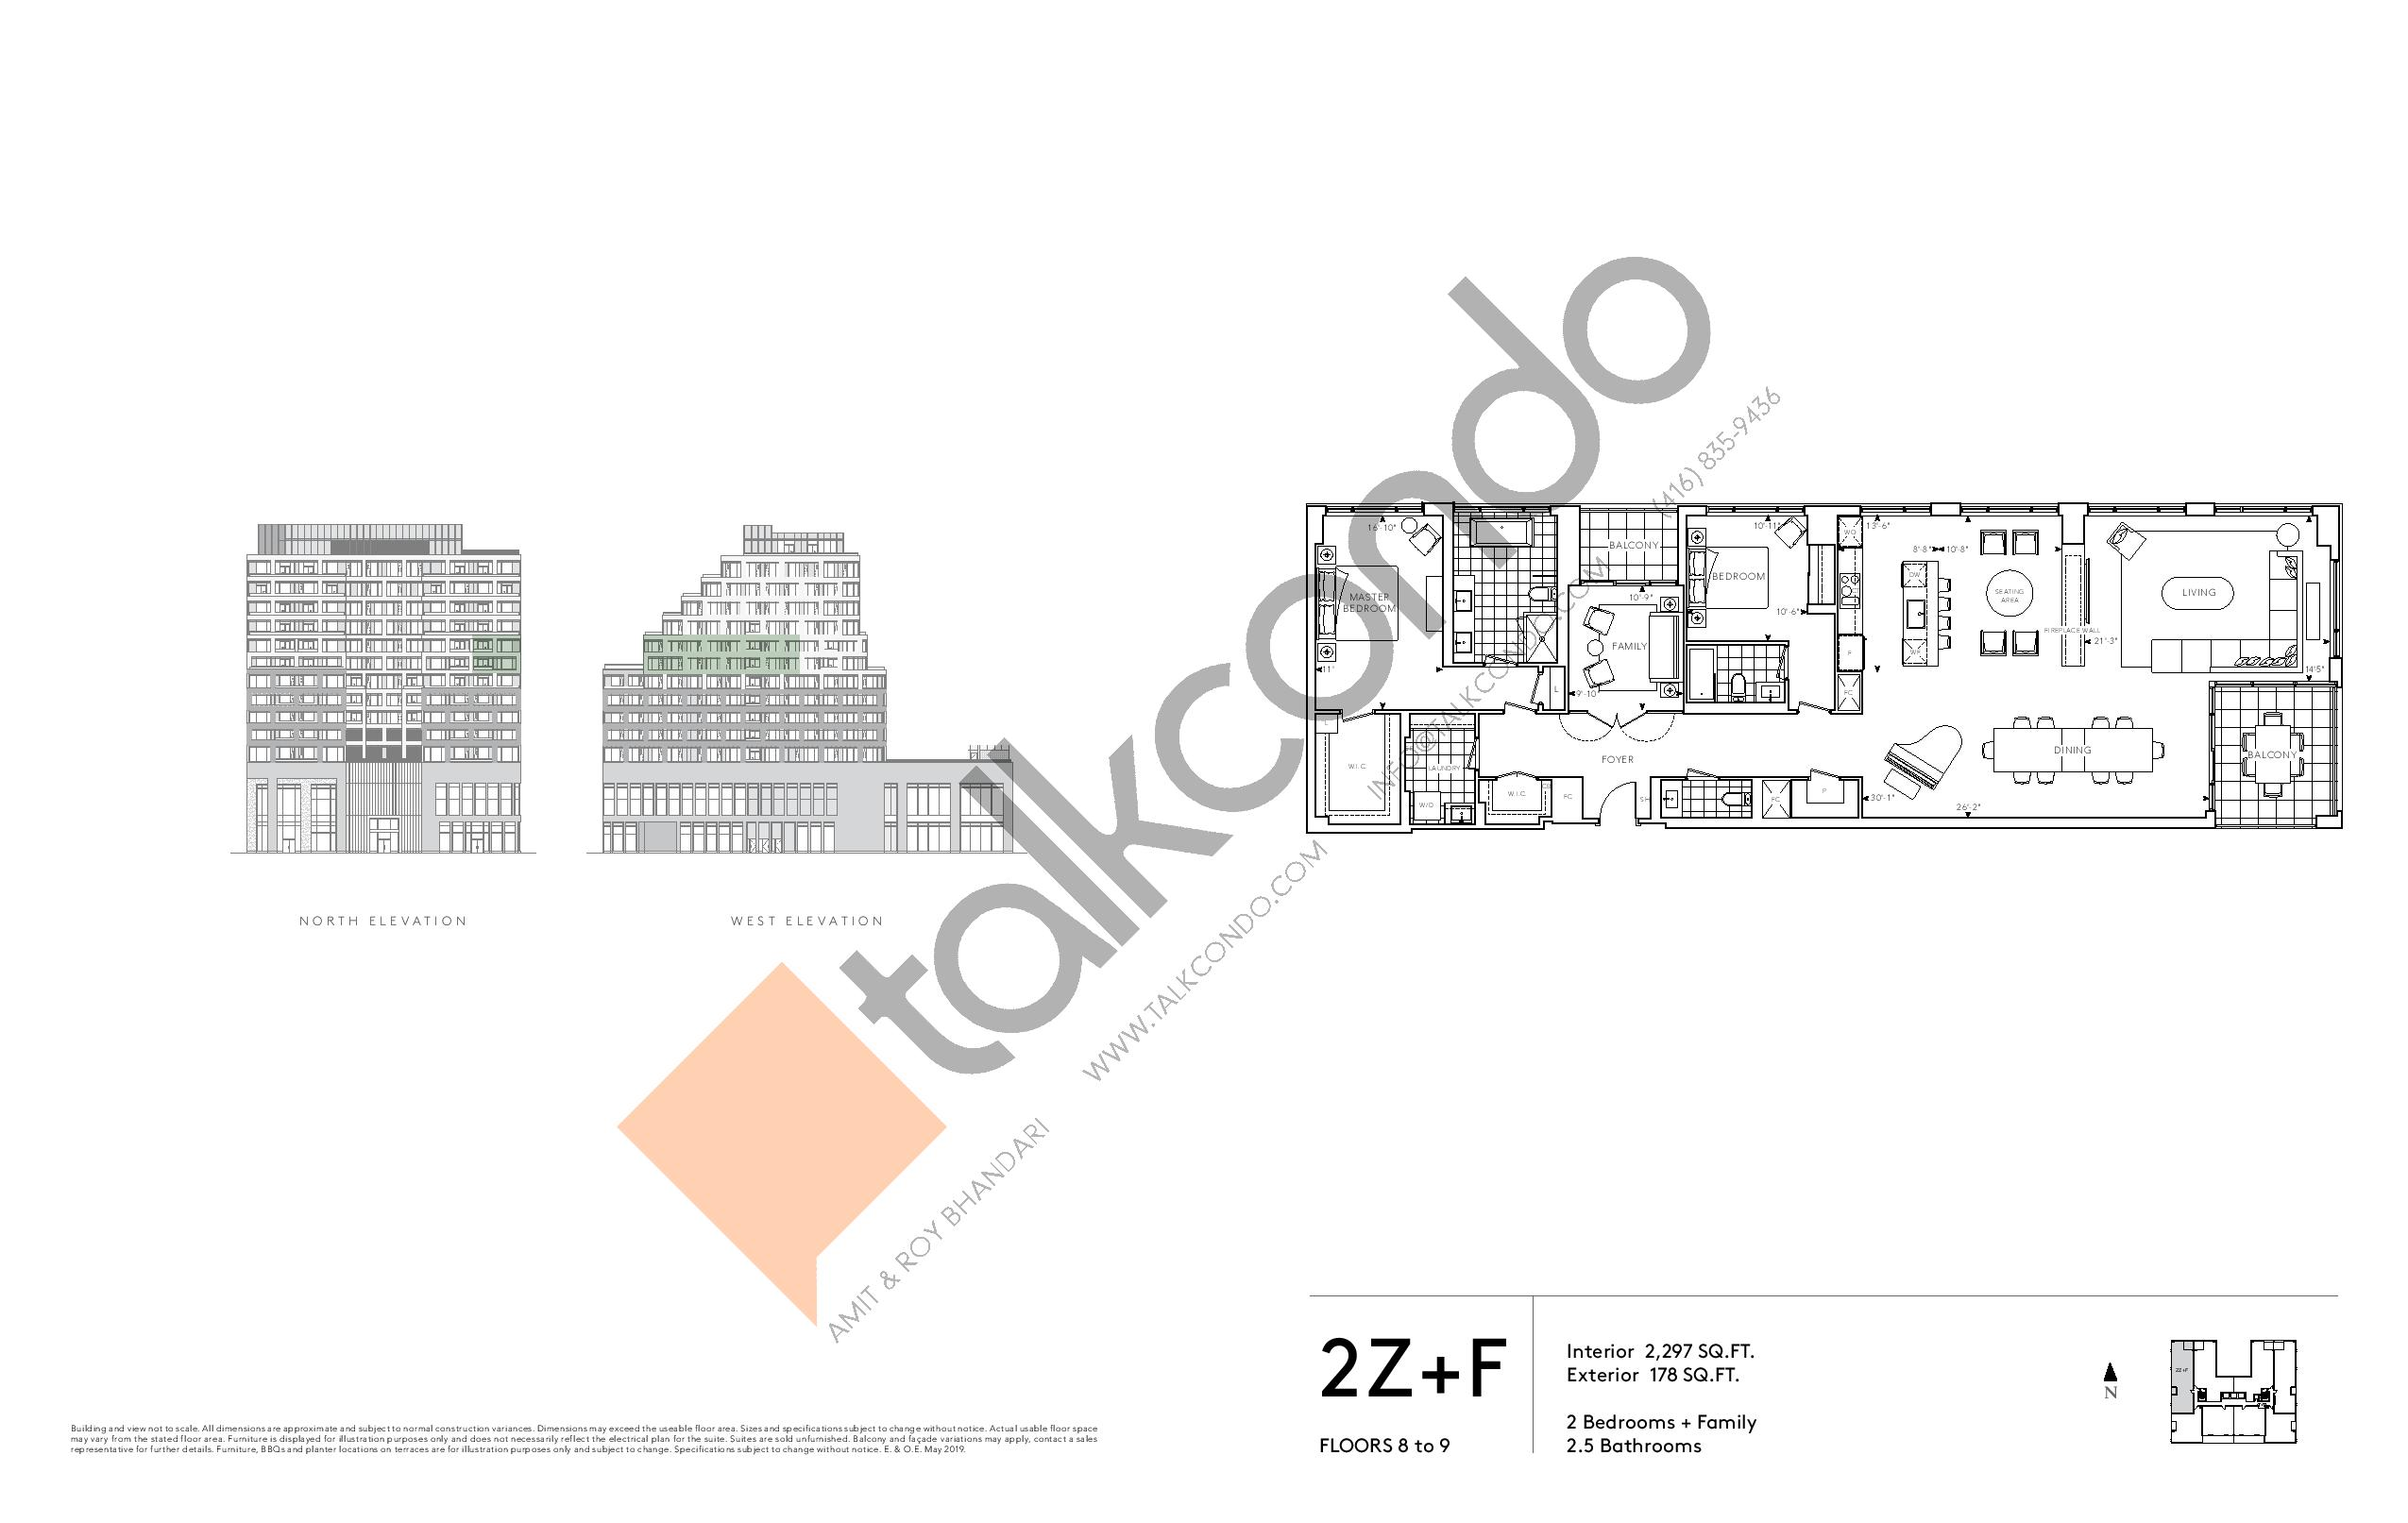 2Z+F - Signature Series Floor Plan at Tridel at The Well Condos - 2297 sq.ft